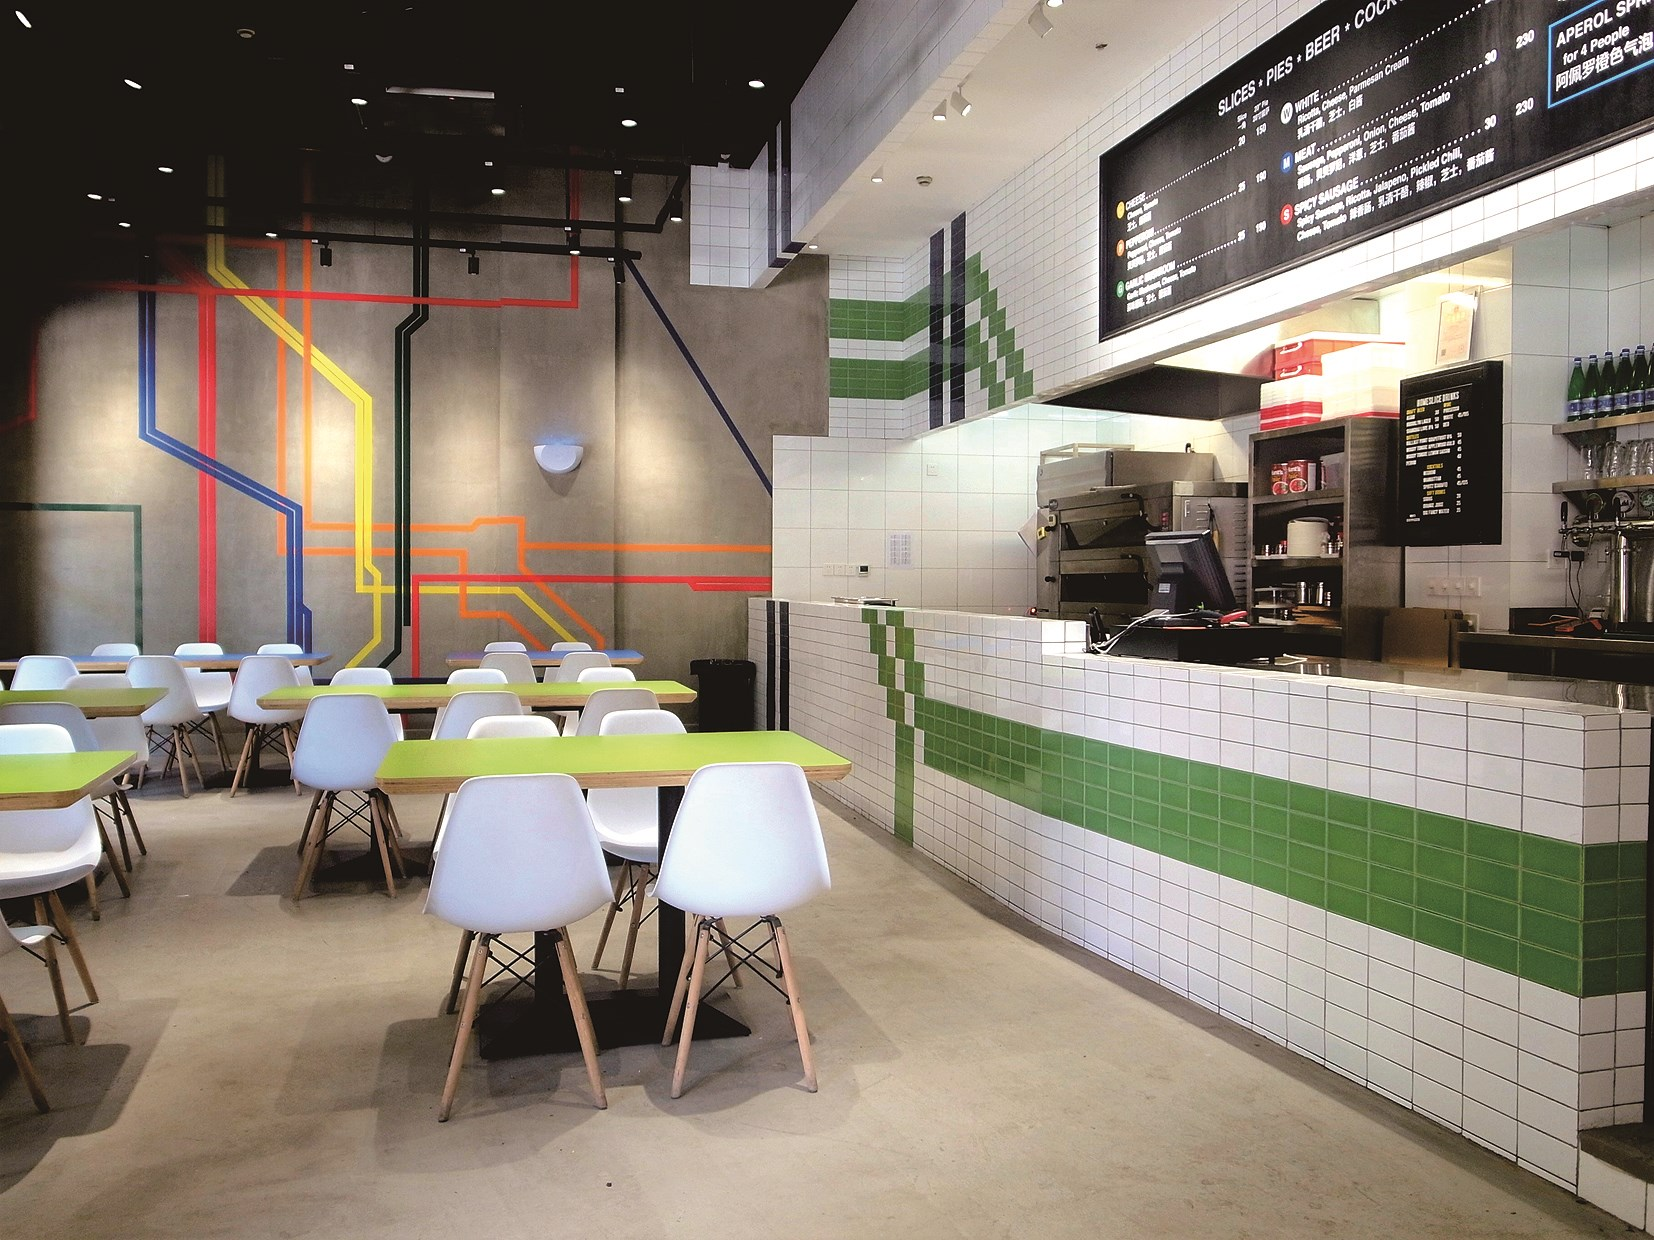 The interior graphics on the wall are inspired by the New York metro system and it gives off a relaxing vibe to have a quick bite.